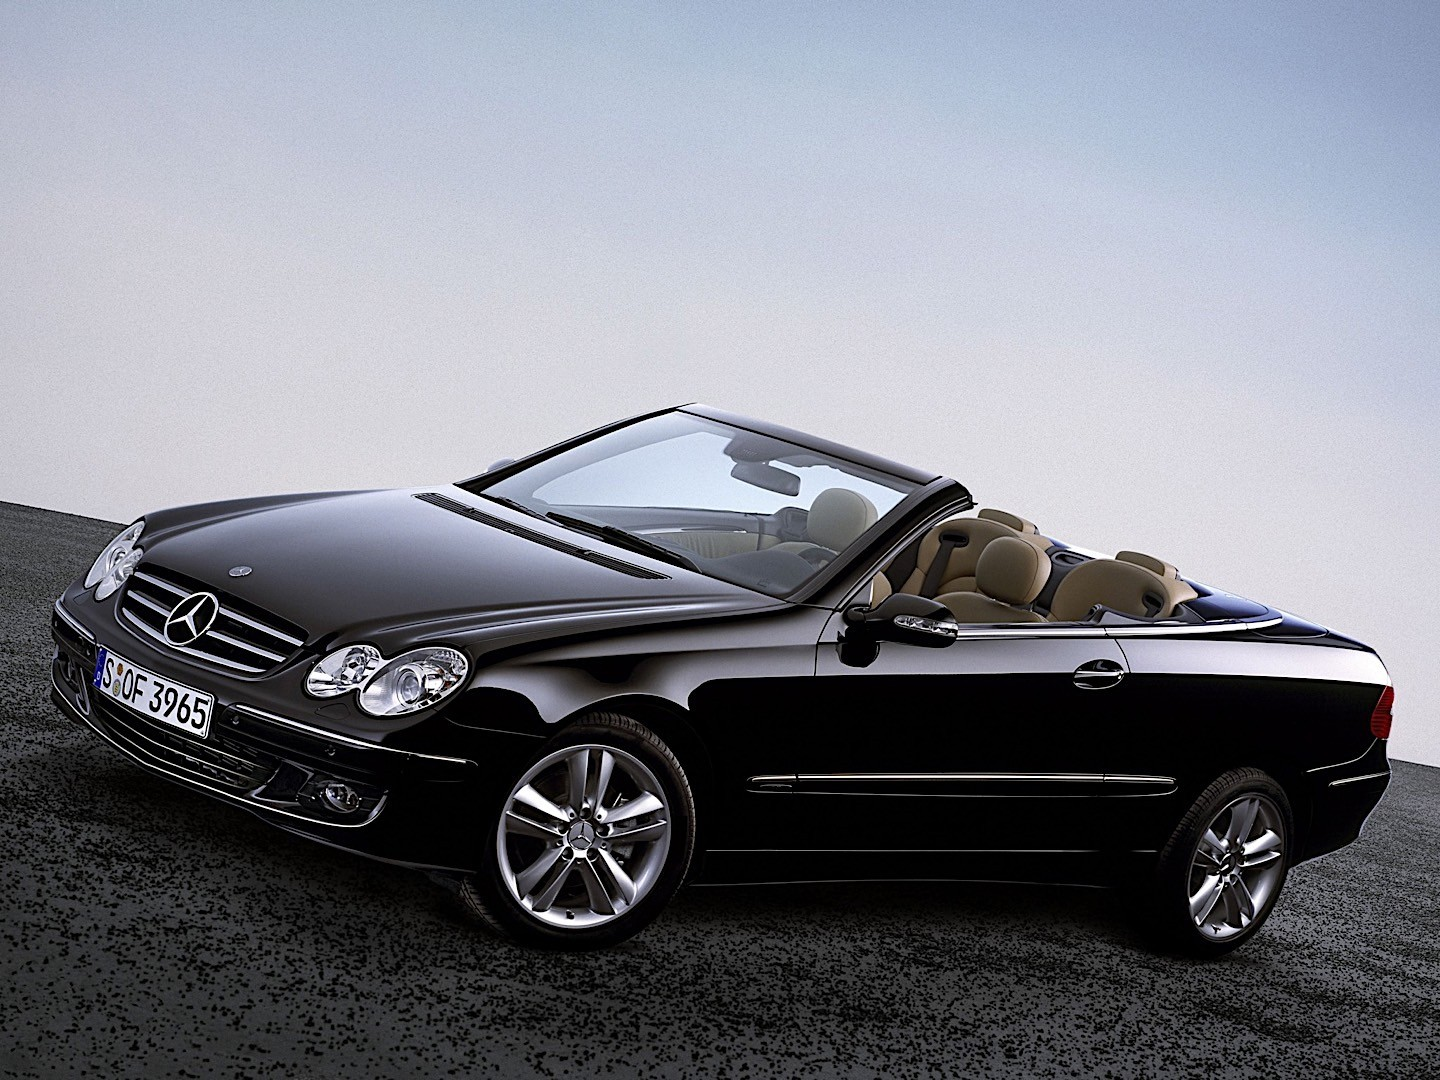 mercedes benz clk cabrio a209 specs photos 2005 2006 2007 2008 2009 autoevolution. Black Bedroom Furniture Sets. Home Design Ideas